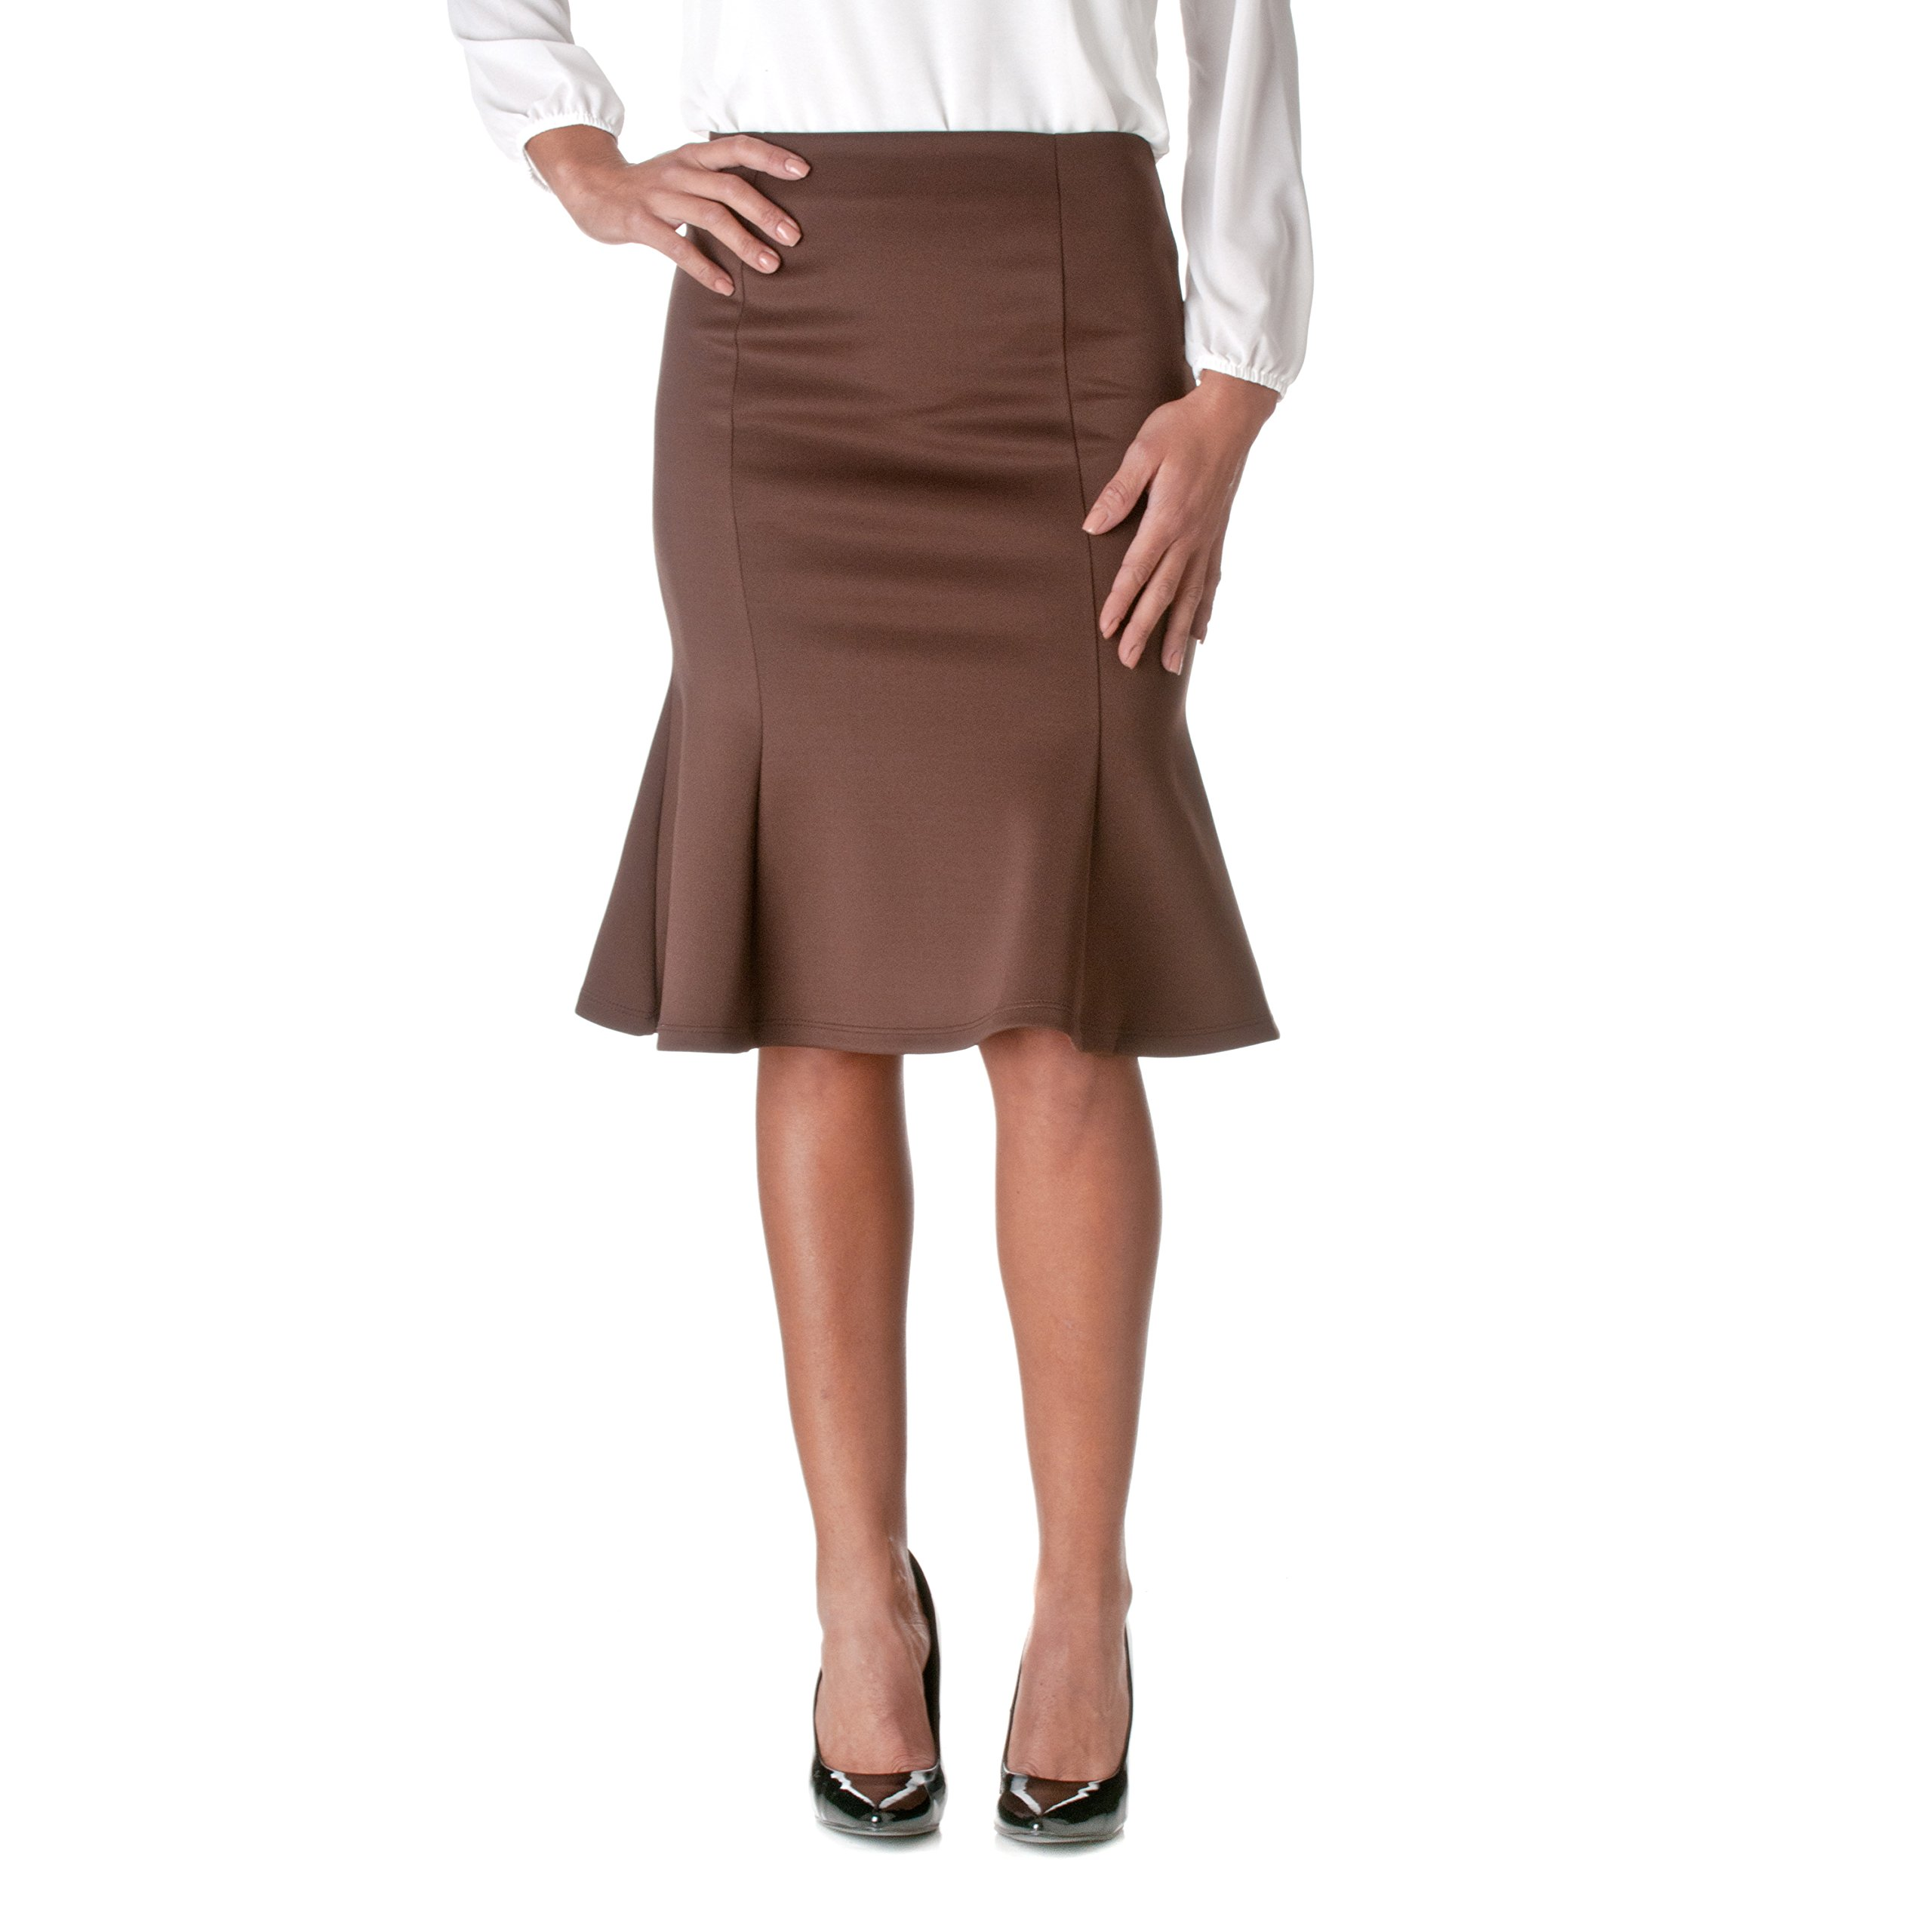 Riverberry by Moa Women's Stretchy Flared Pencil Skirt, Brown, Large